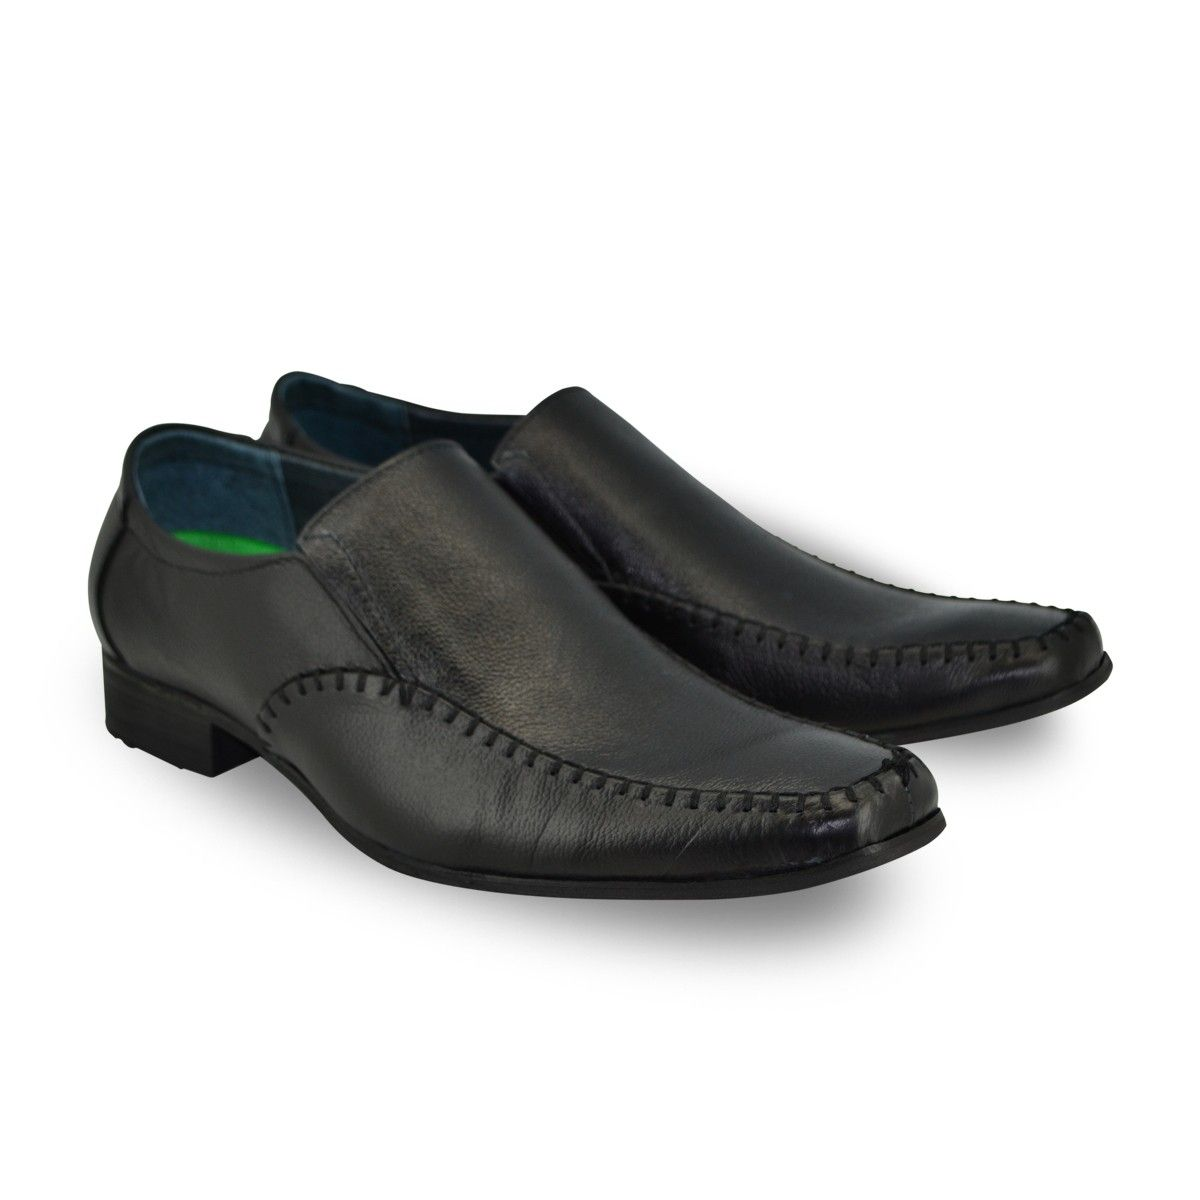 Office Leather Shoes For Men Online Shoe Philippines P 1 499 95